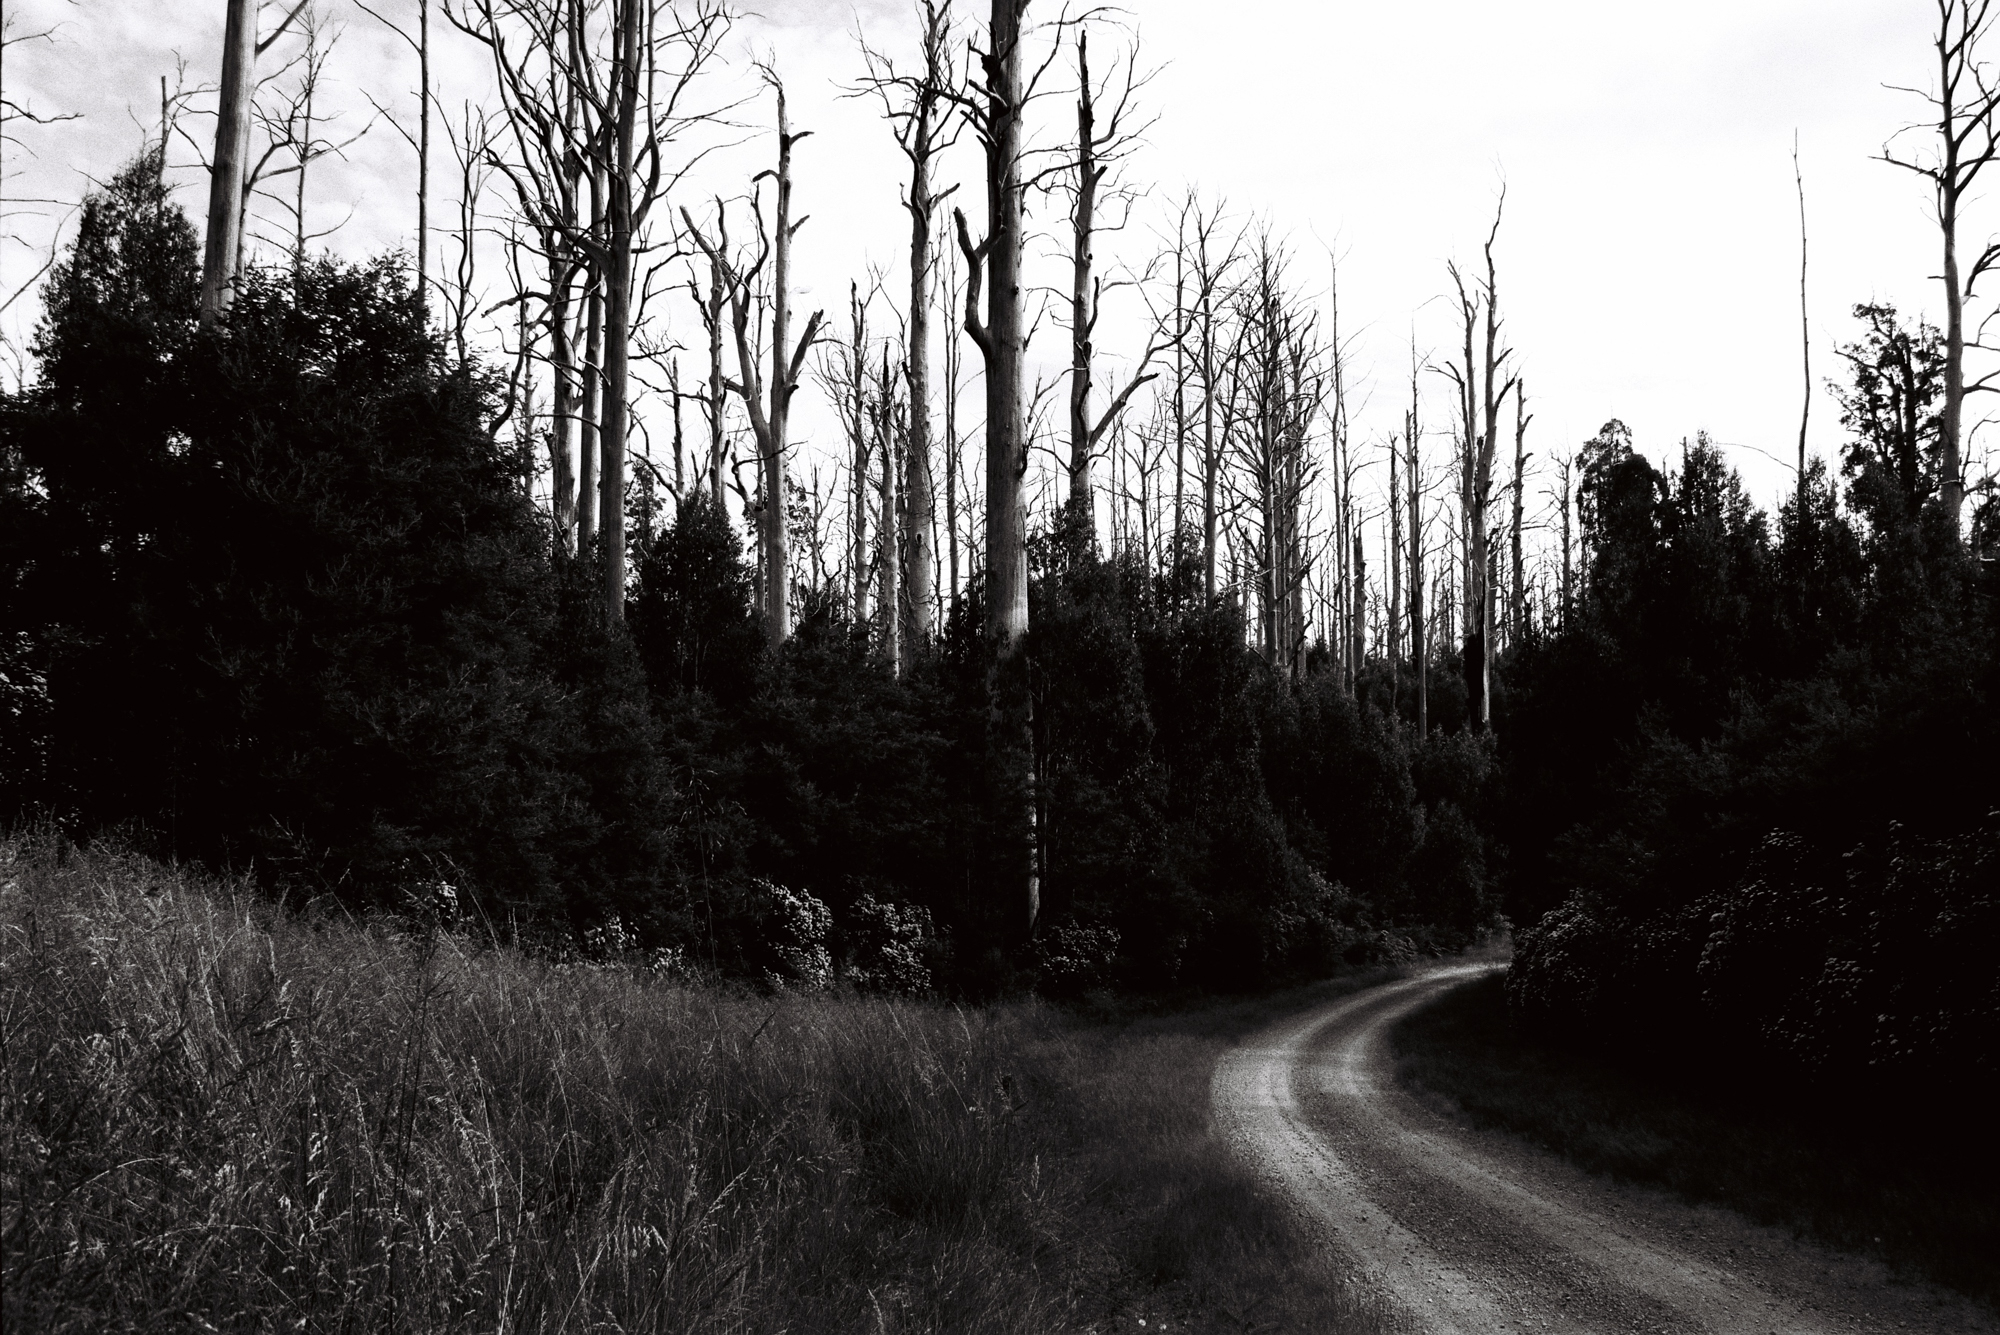 Travelling along Road 8, Victoria - 2018